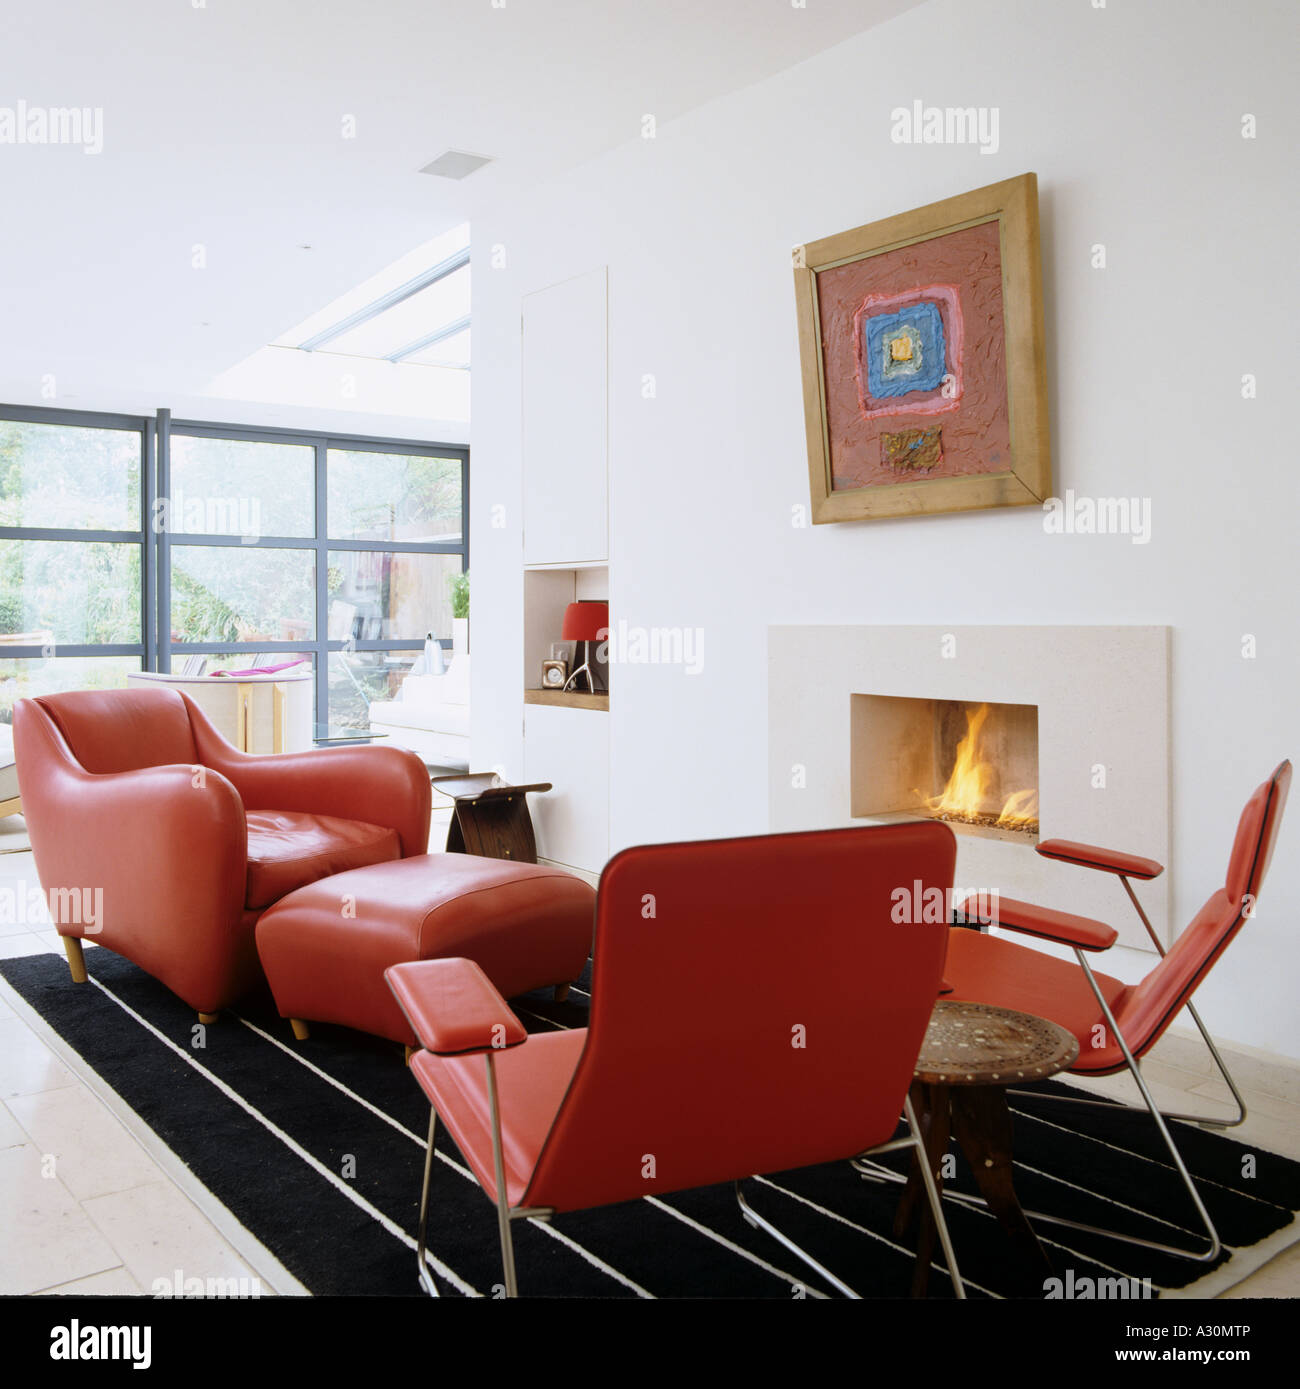 Modern Red Leather Furniture By Fireplace In Open Plan Living Room   Stock  Image